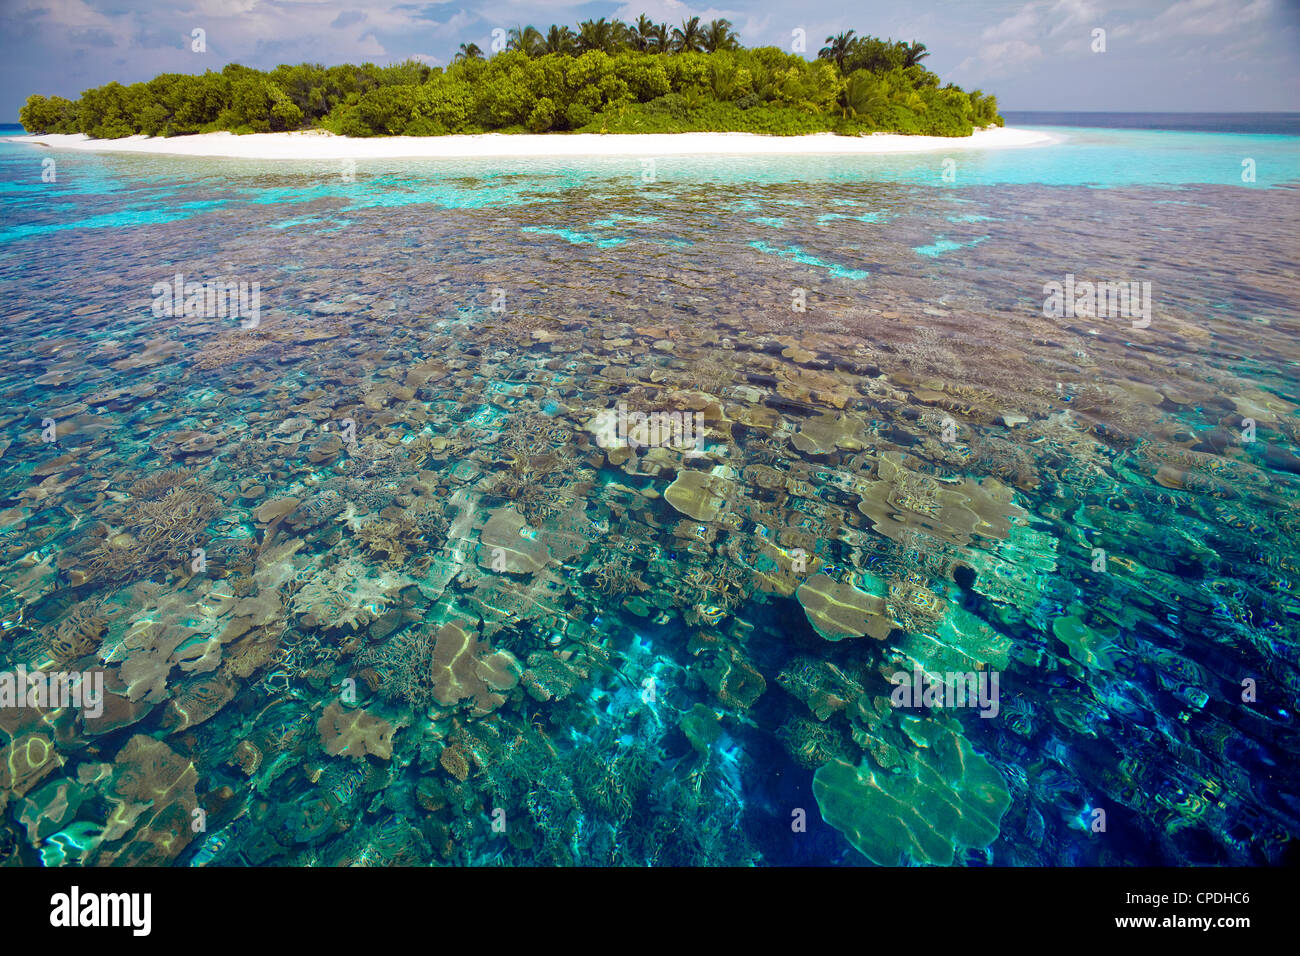 Coral plates, lagoon and tropical island, Maldives, Indian Ocean, Asia Stock Photo